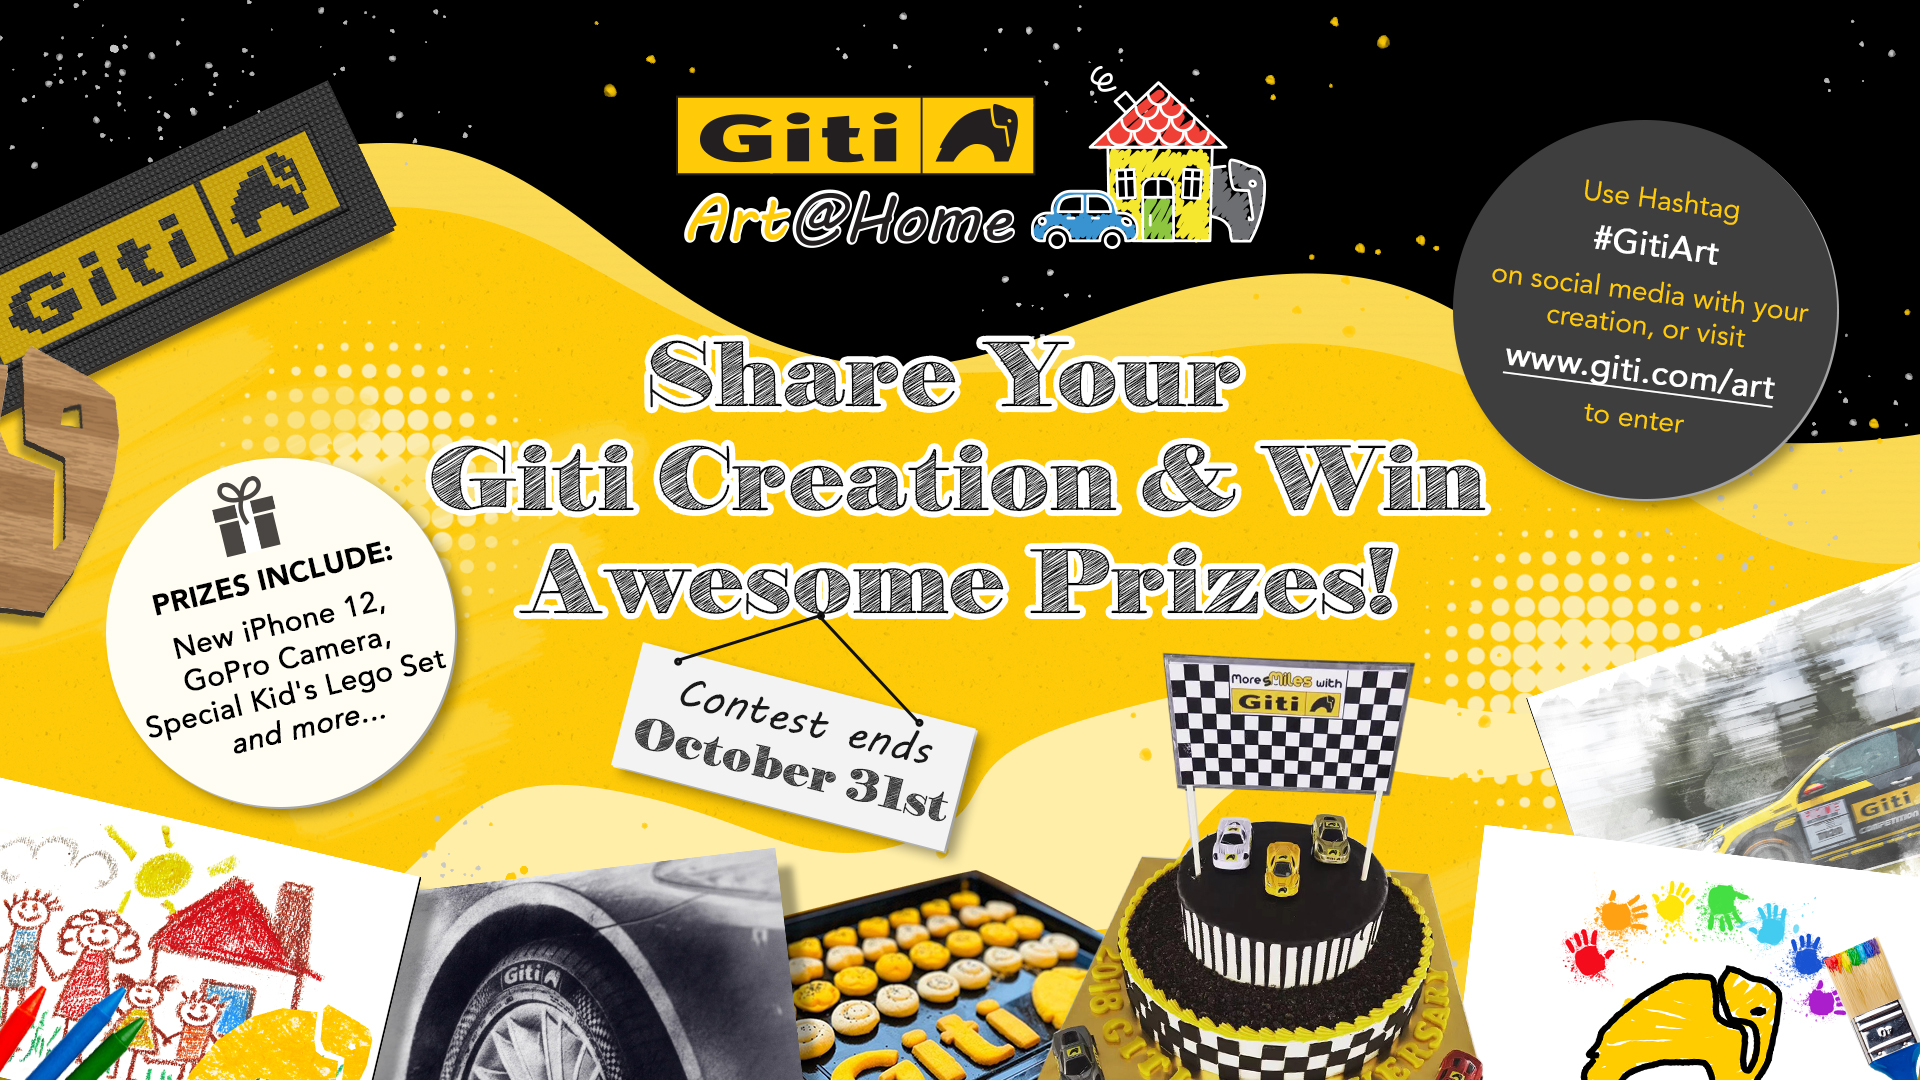 Giti Tire Celebrates October Anniversary Month with 'Giti Art@Home' Contest